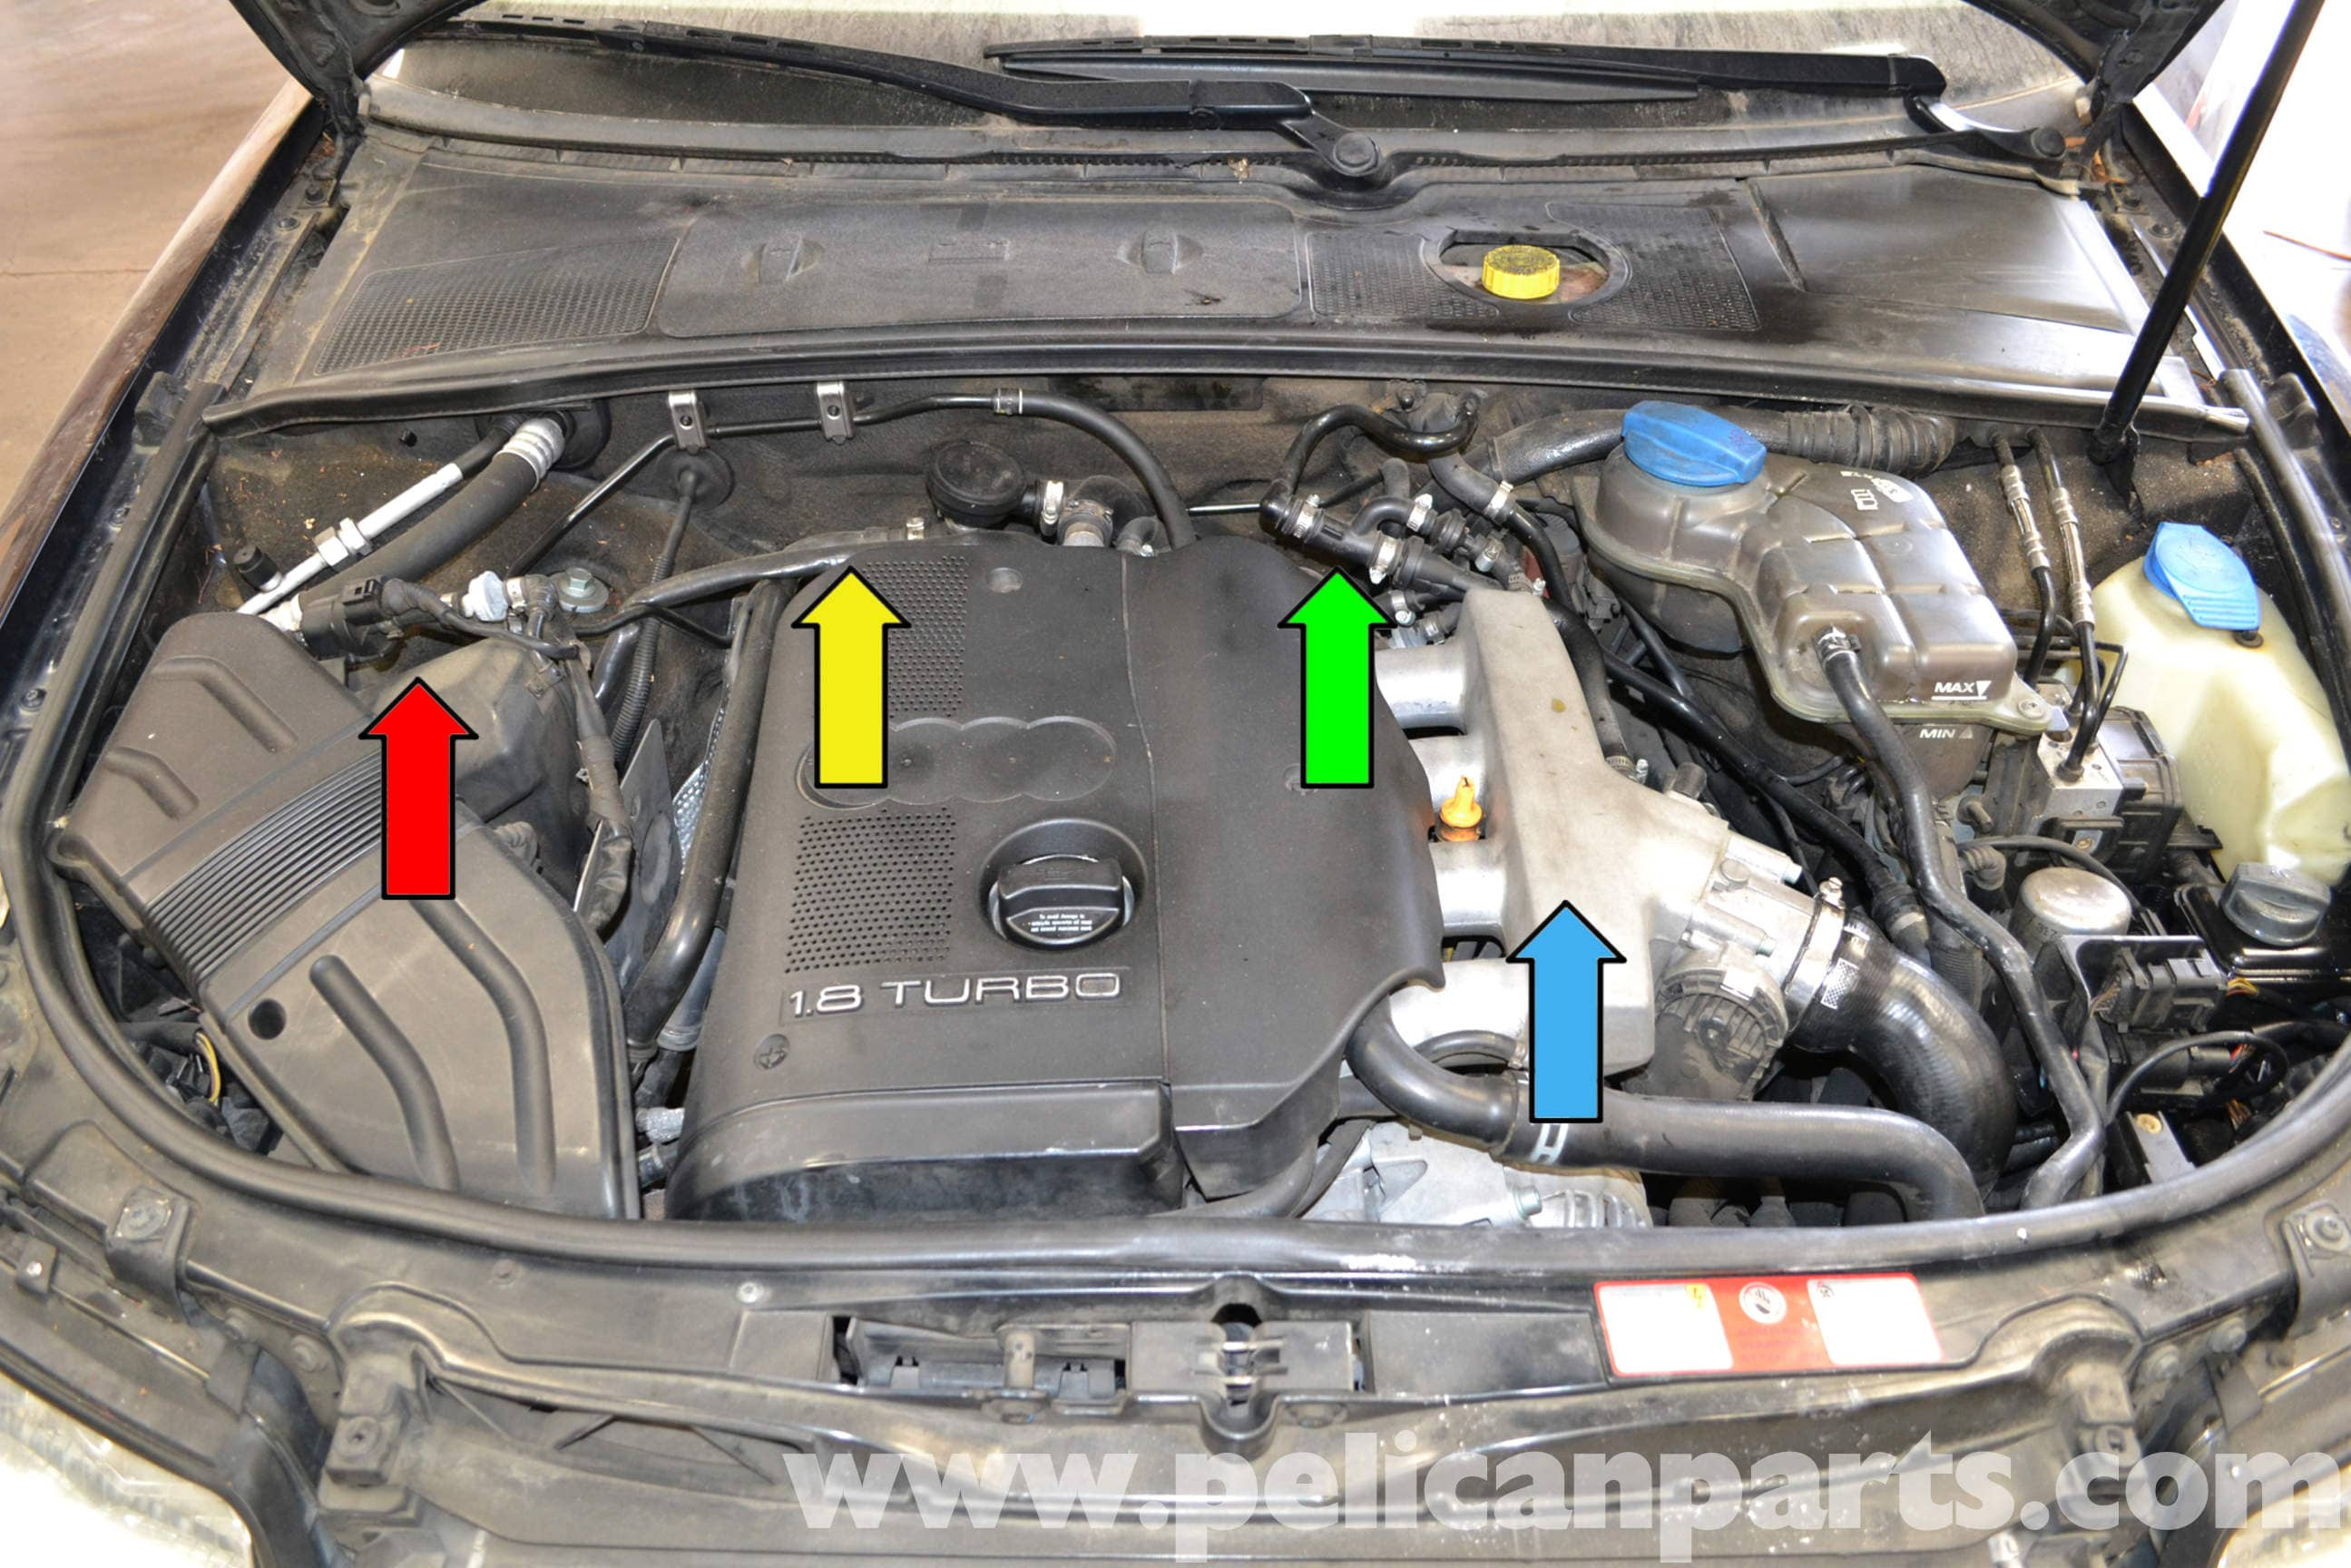 2003 Audi A4 1 8t Engine Diagram - Get Wiring Diagram A L Engine Diagram on